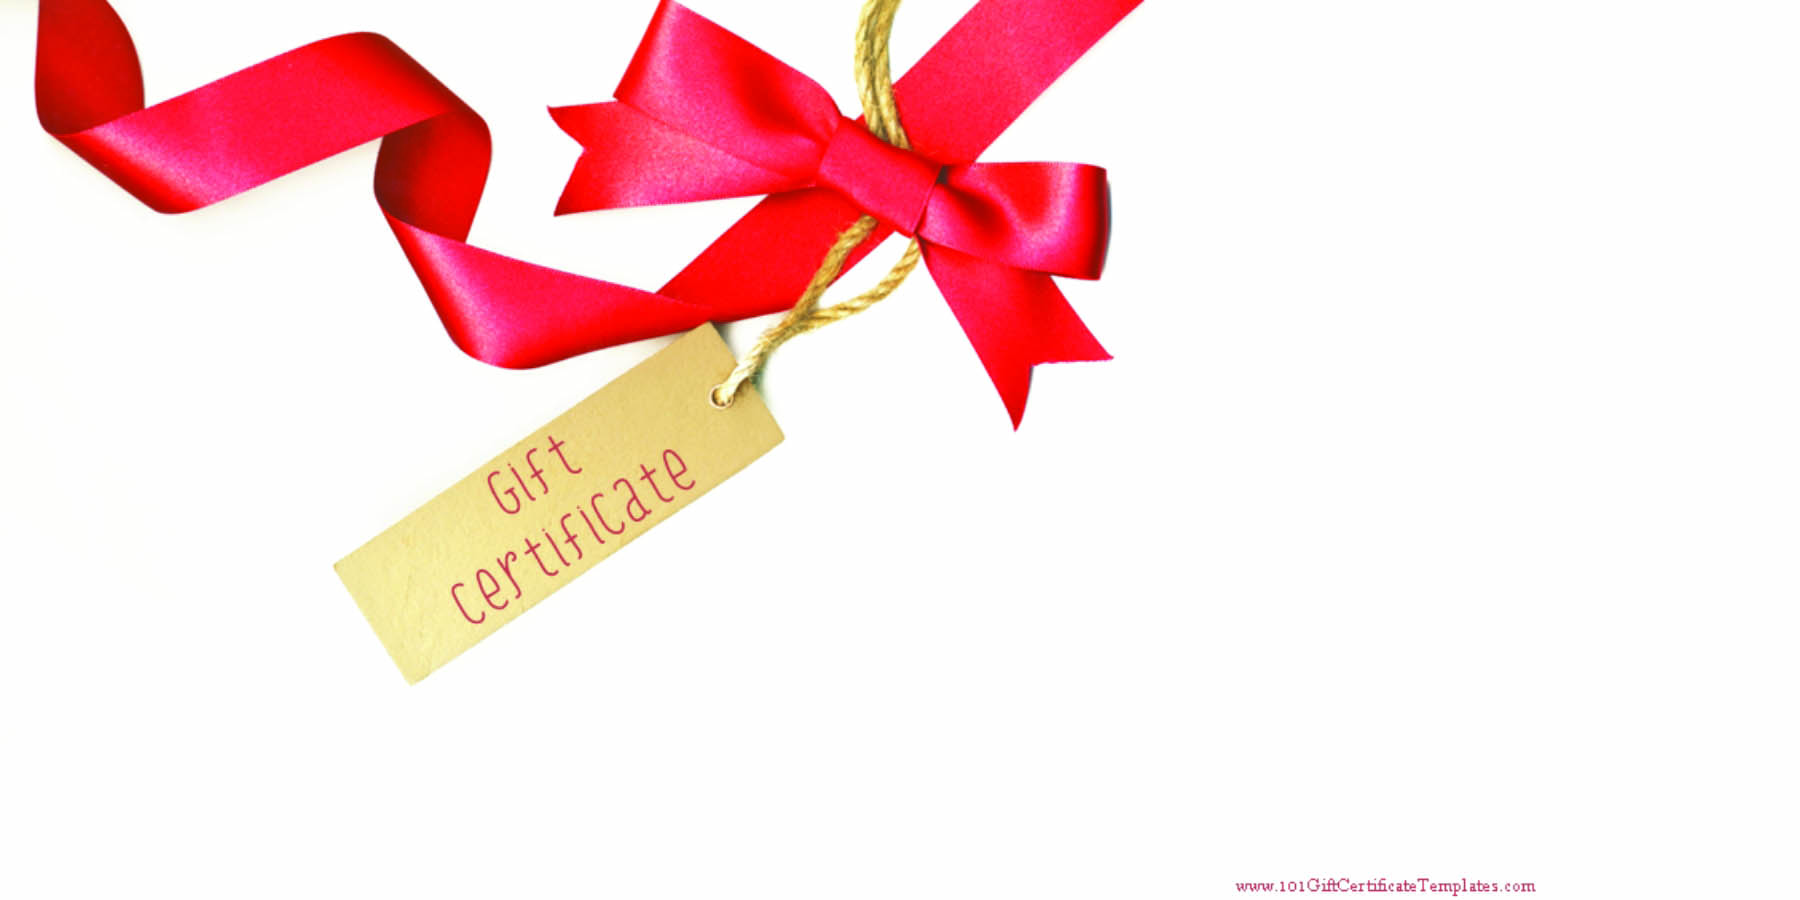 holiday gift guide suburban living magazine gift certificate template 20